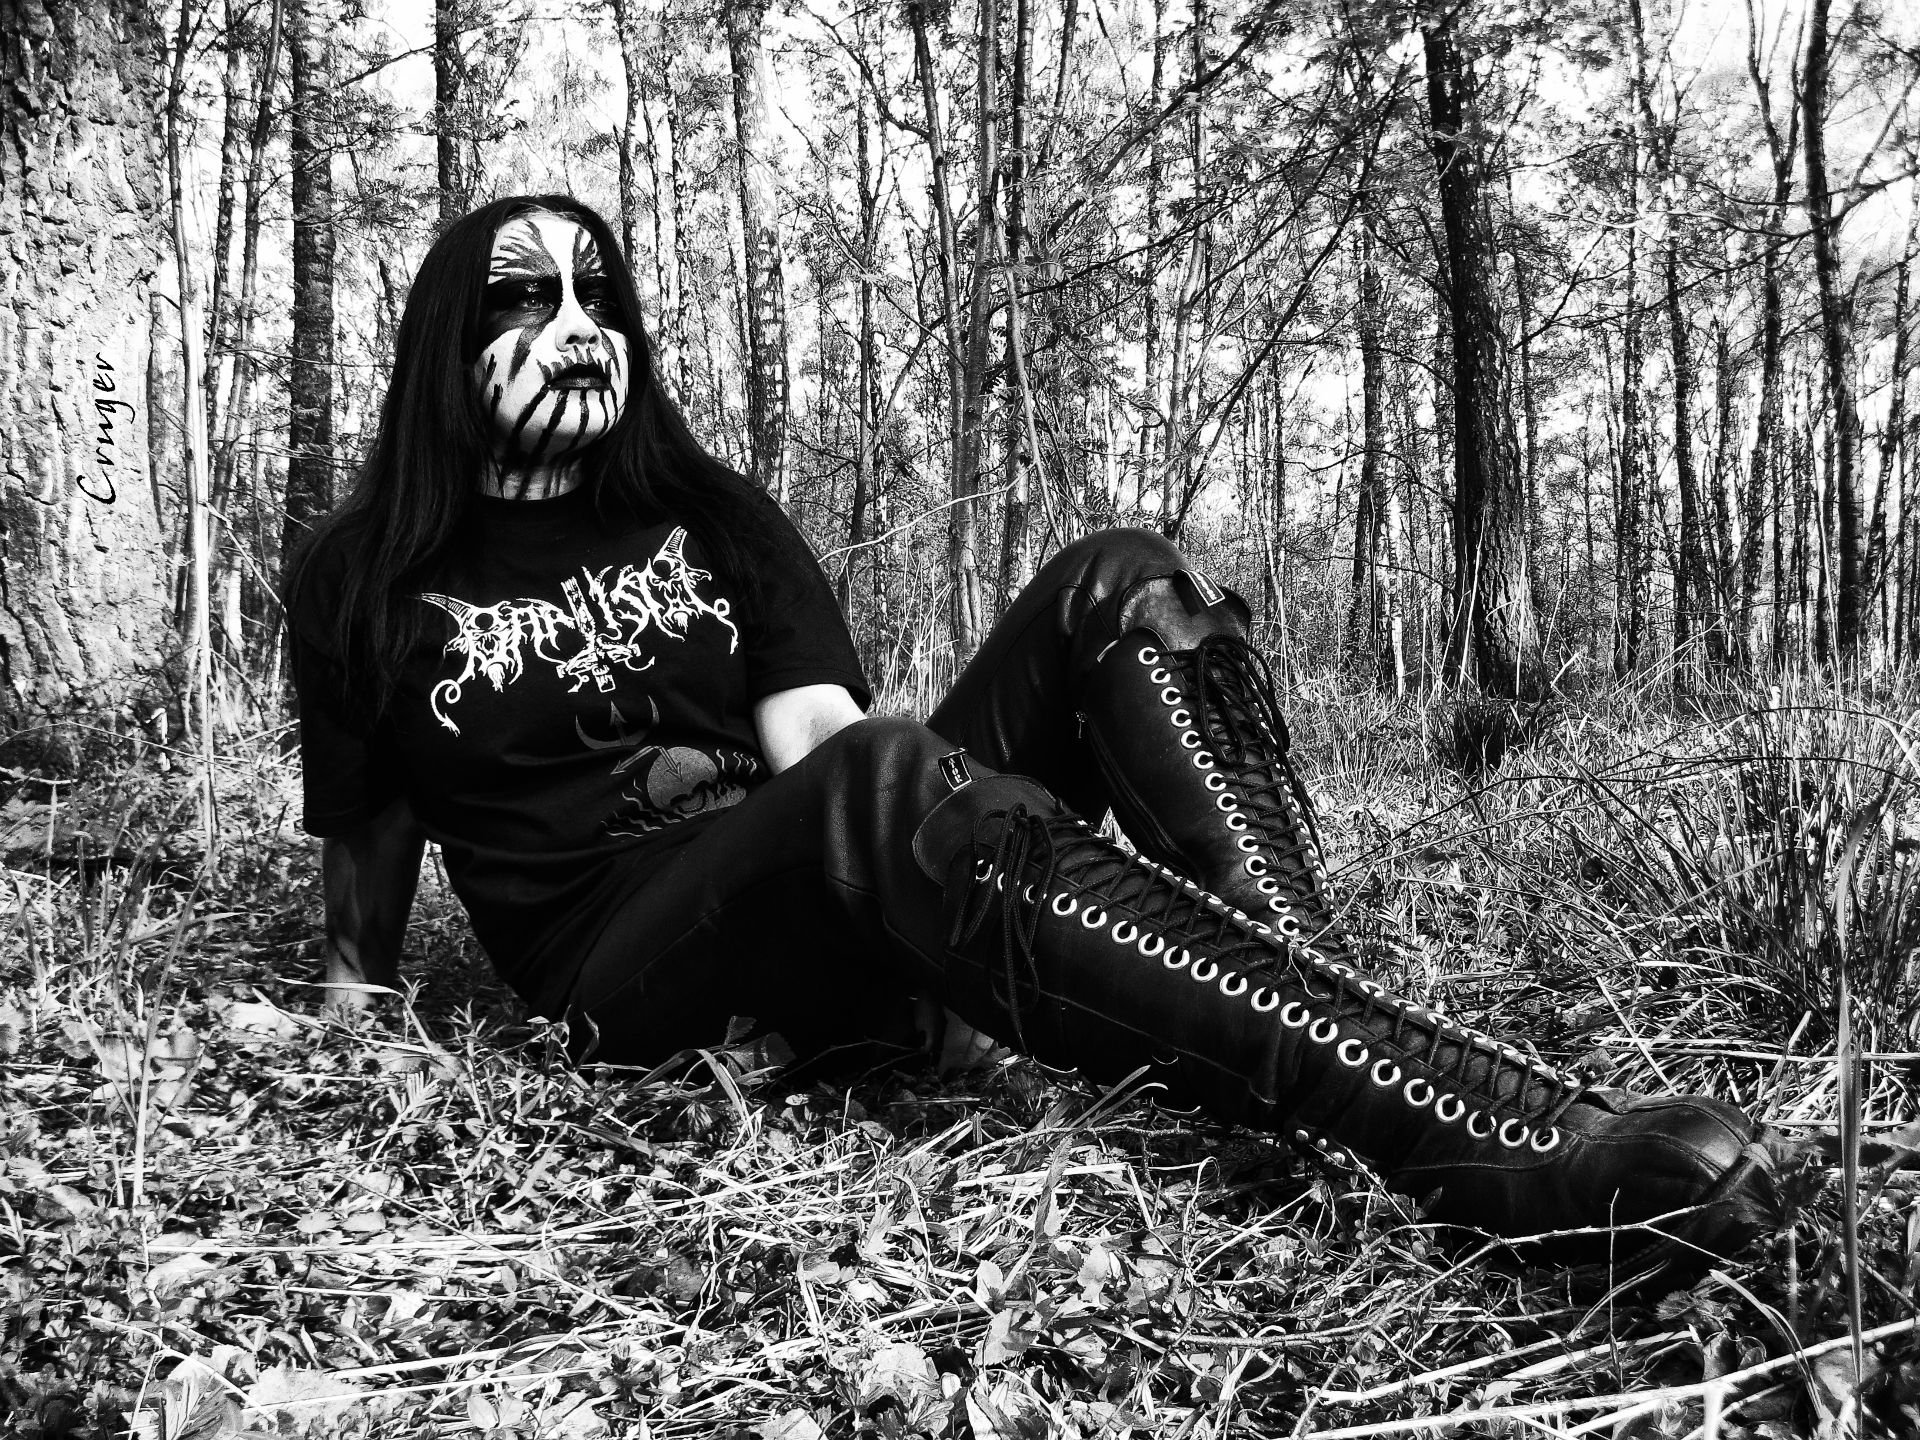 59 Black Metal Hd Wallpapers Background Images Wallpaper Abyss